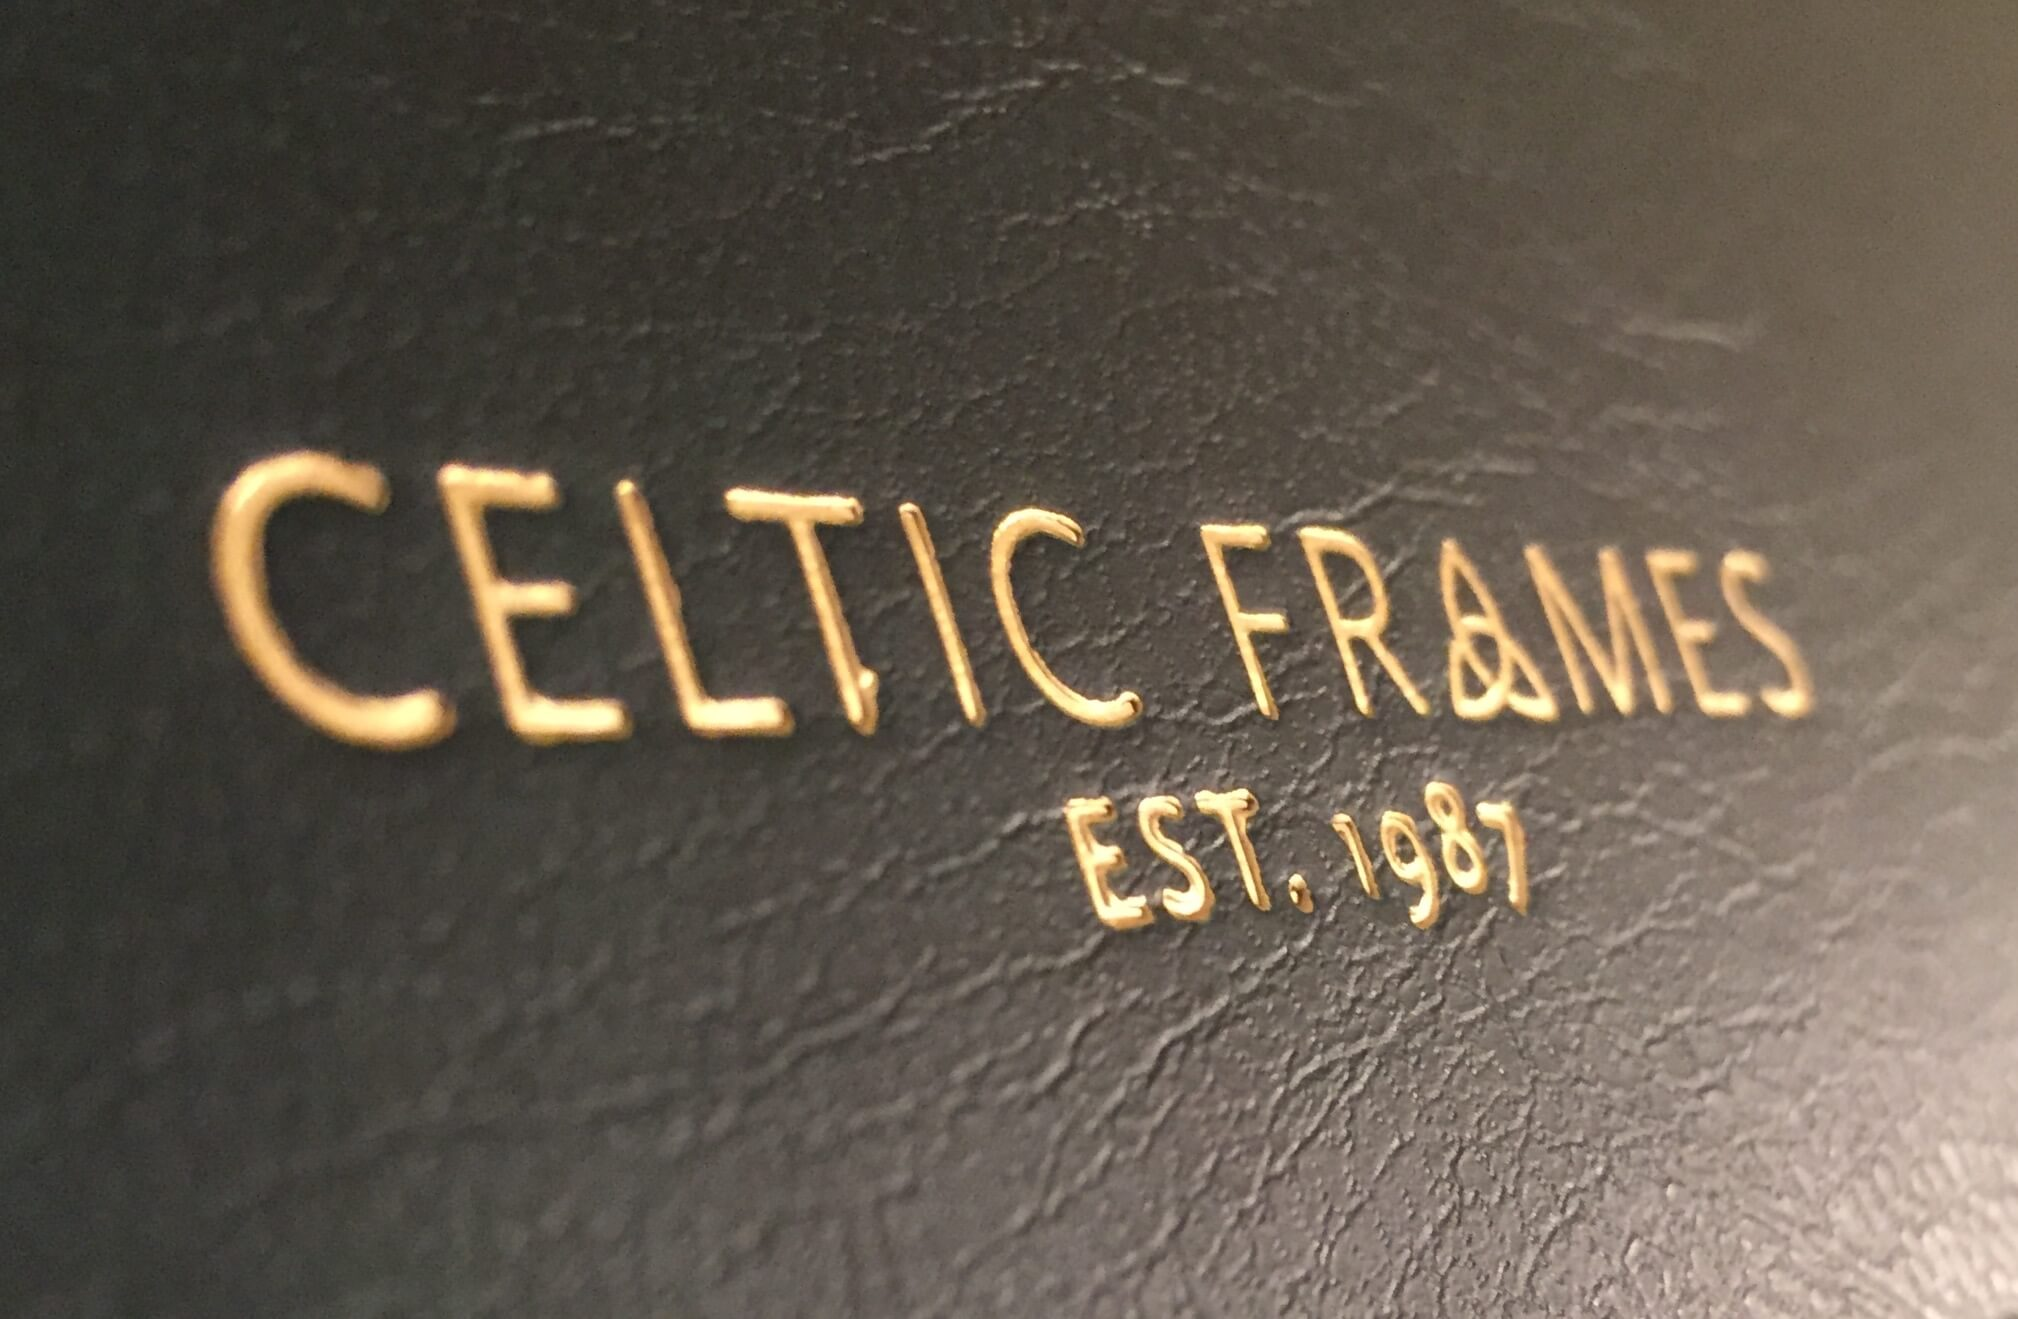 celtic frames logo on leather